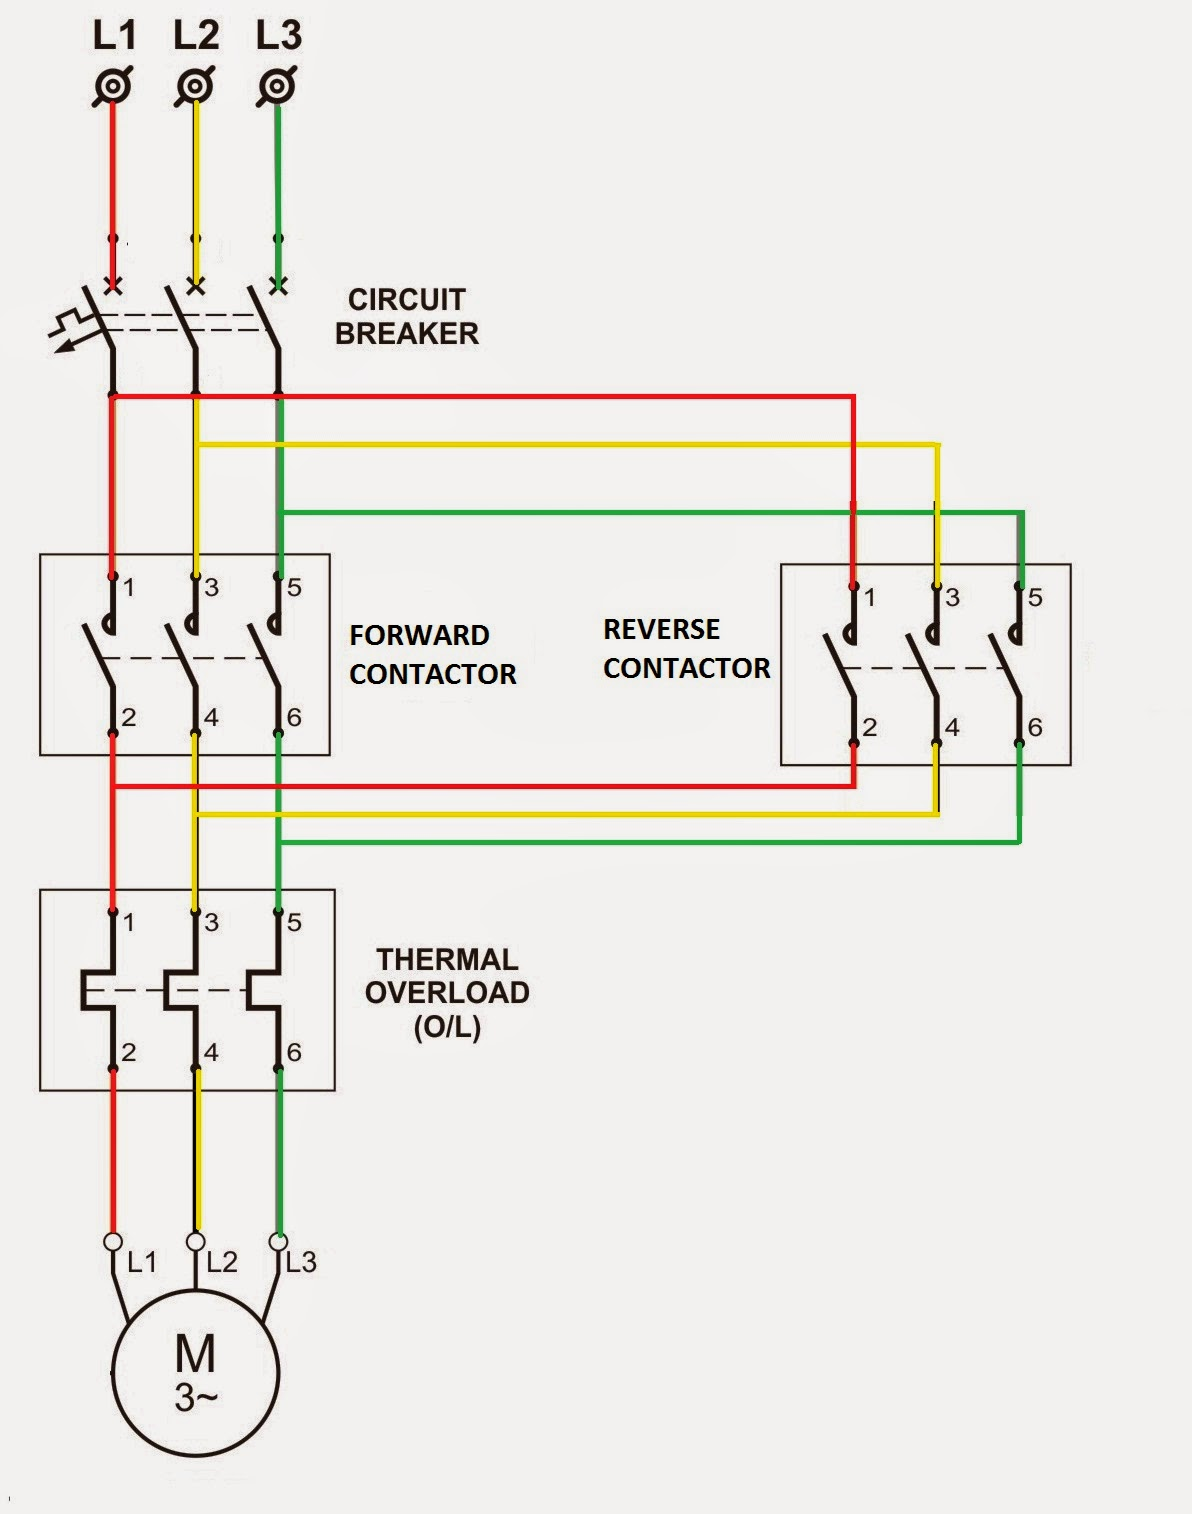 dol starter circuit diagram   wiring diagram and circuit schematic    direct online motor starter forward and reverse diagram on dol starter circuit diagram